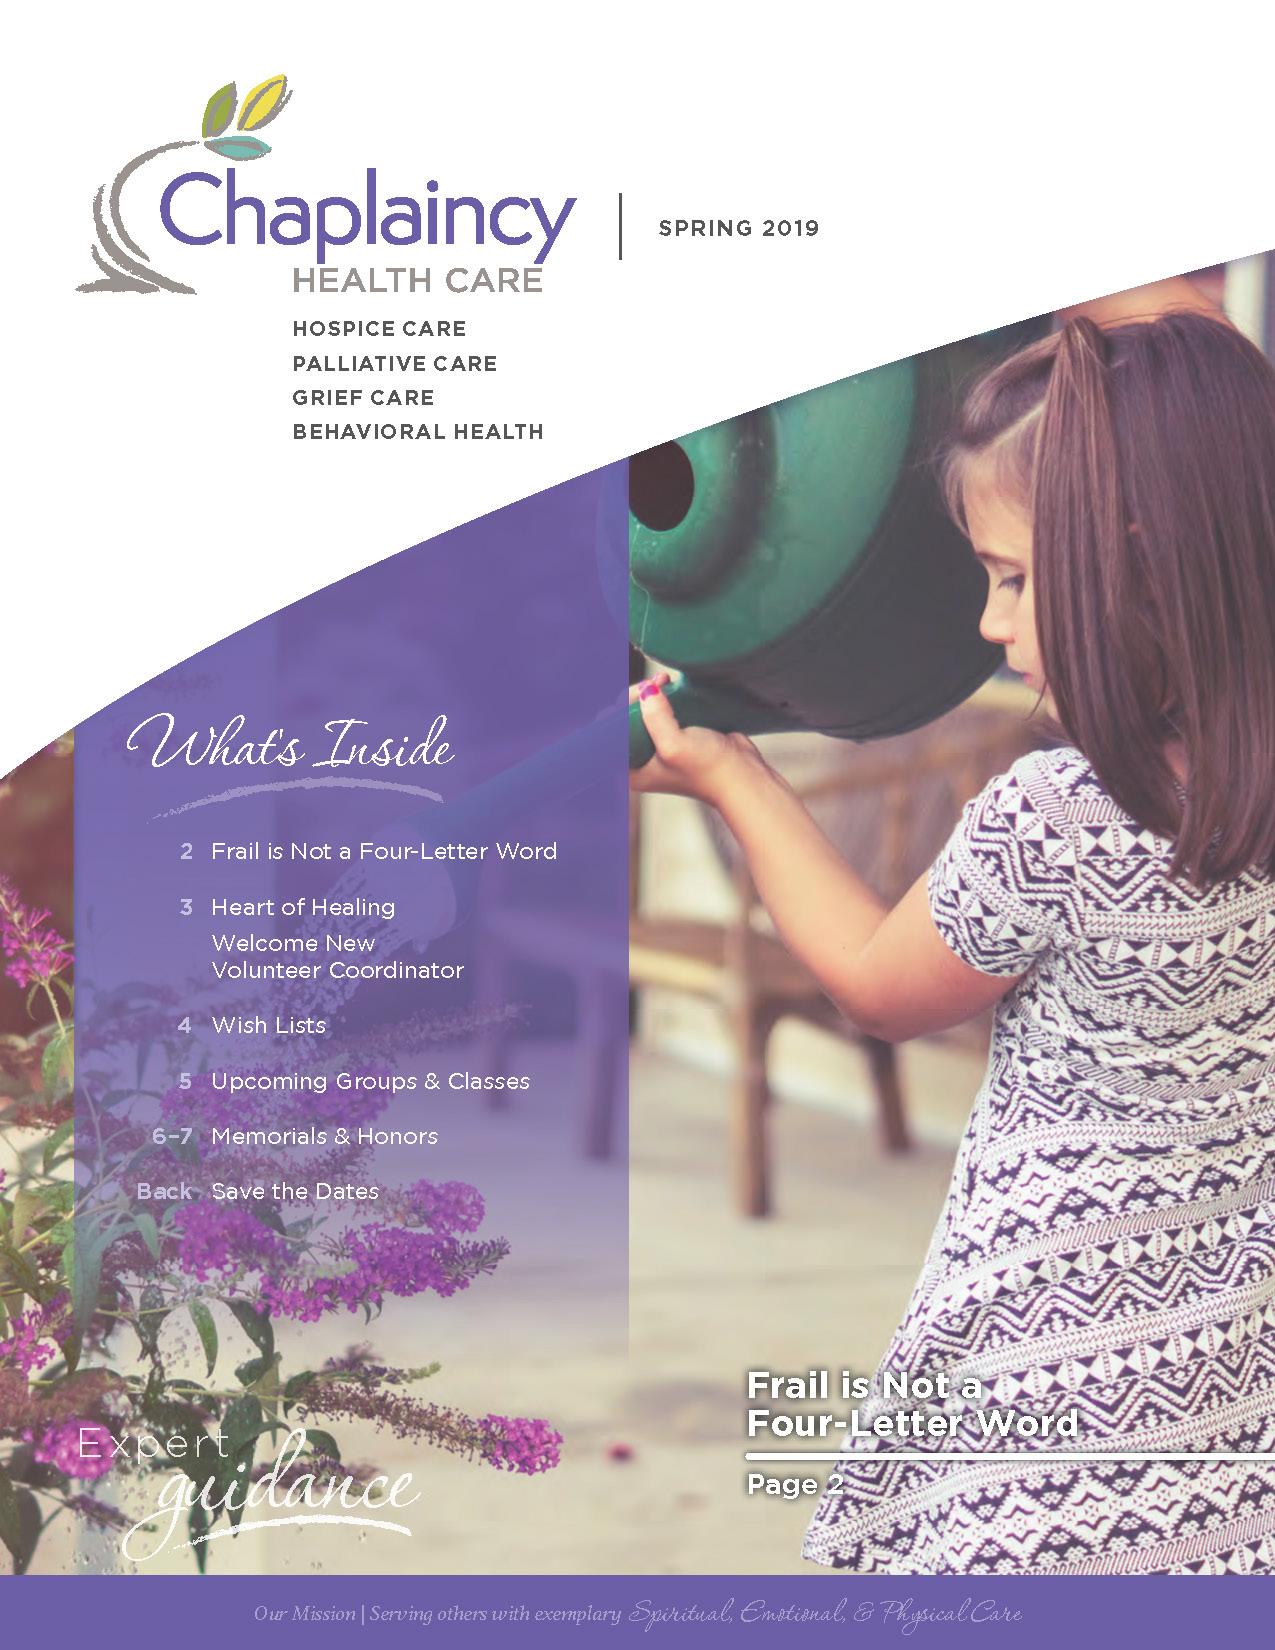 Chaplaincy Health Care Spring 2019 Newsletter